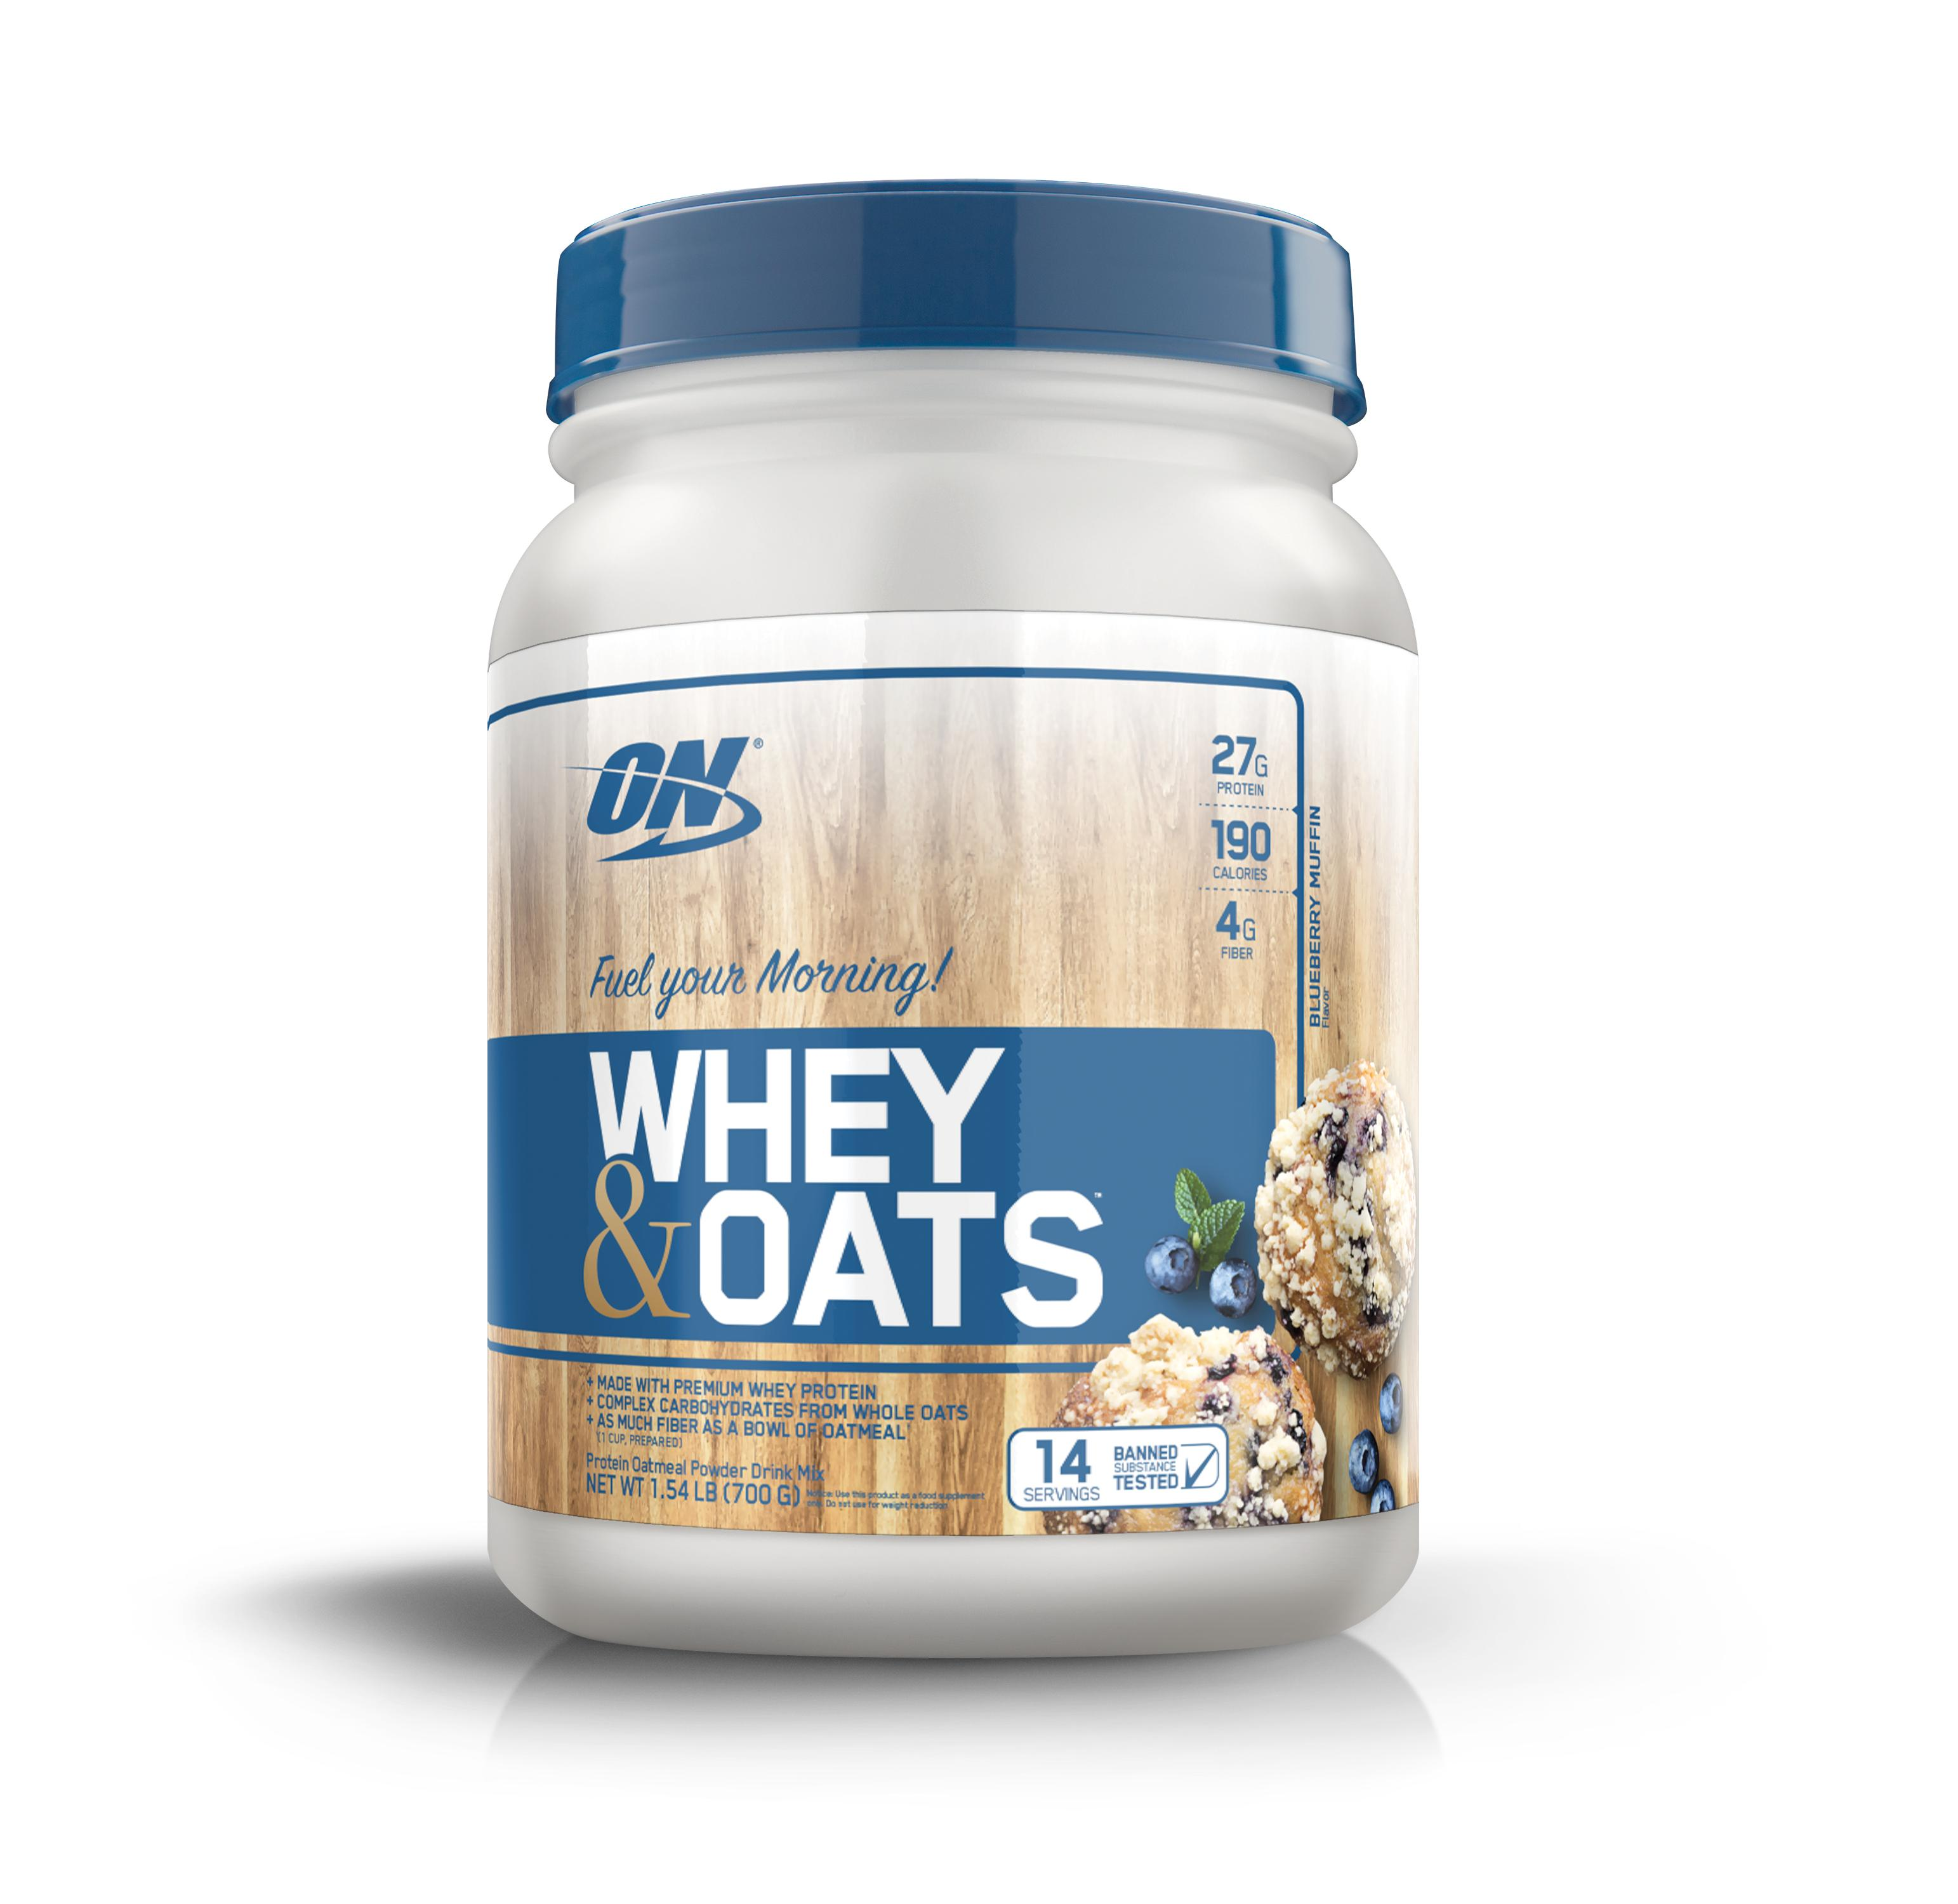 Optimum Nutrition Whey & Oats Protein Powder, Blueberry Muffin, 27g Protein, 1.54 Lb